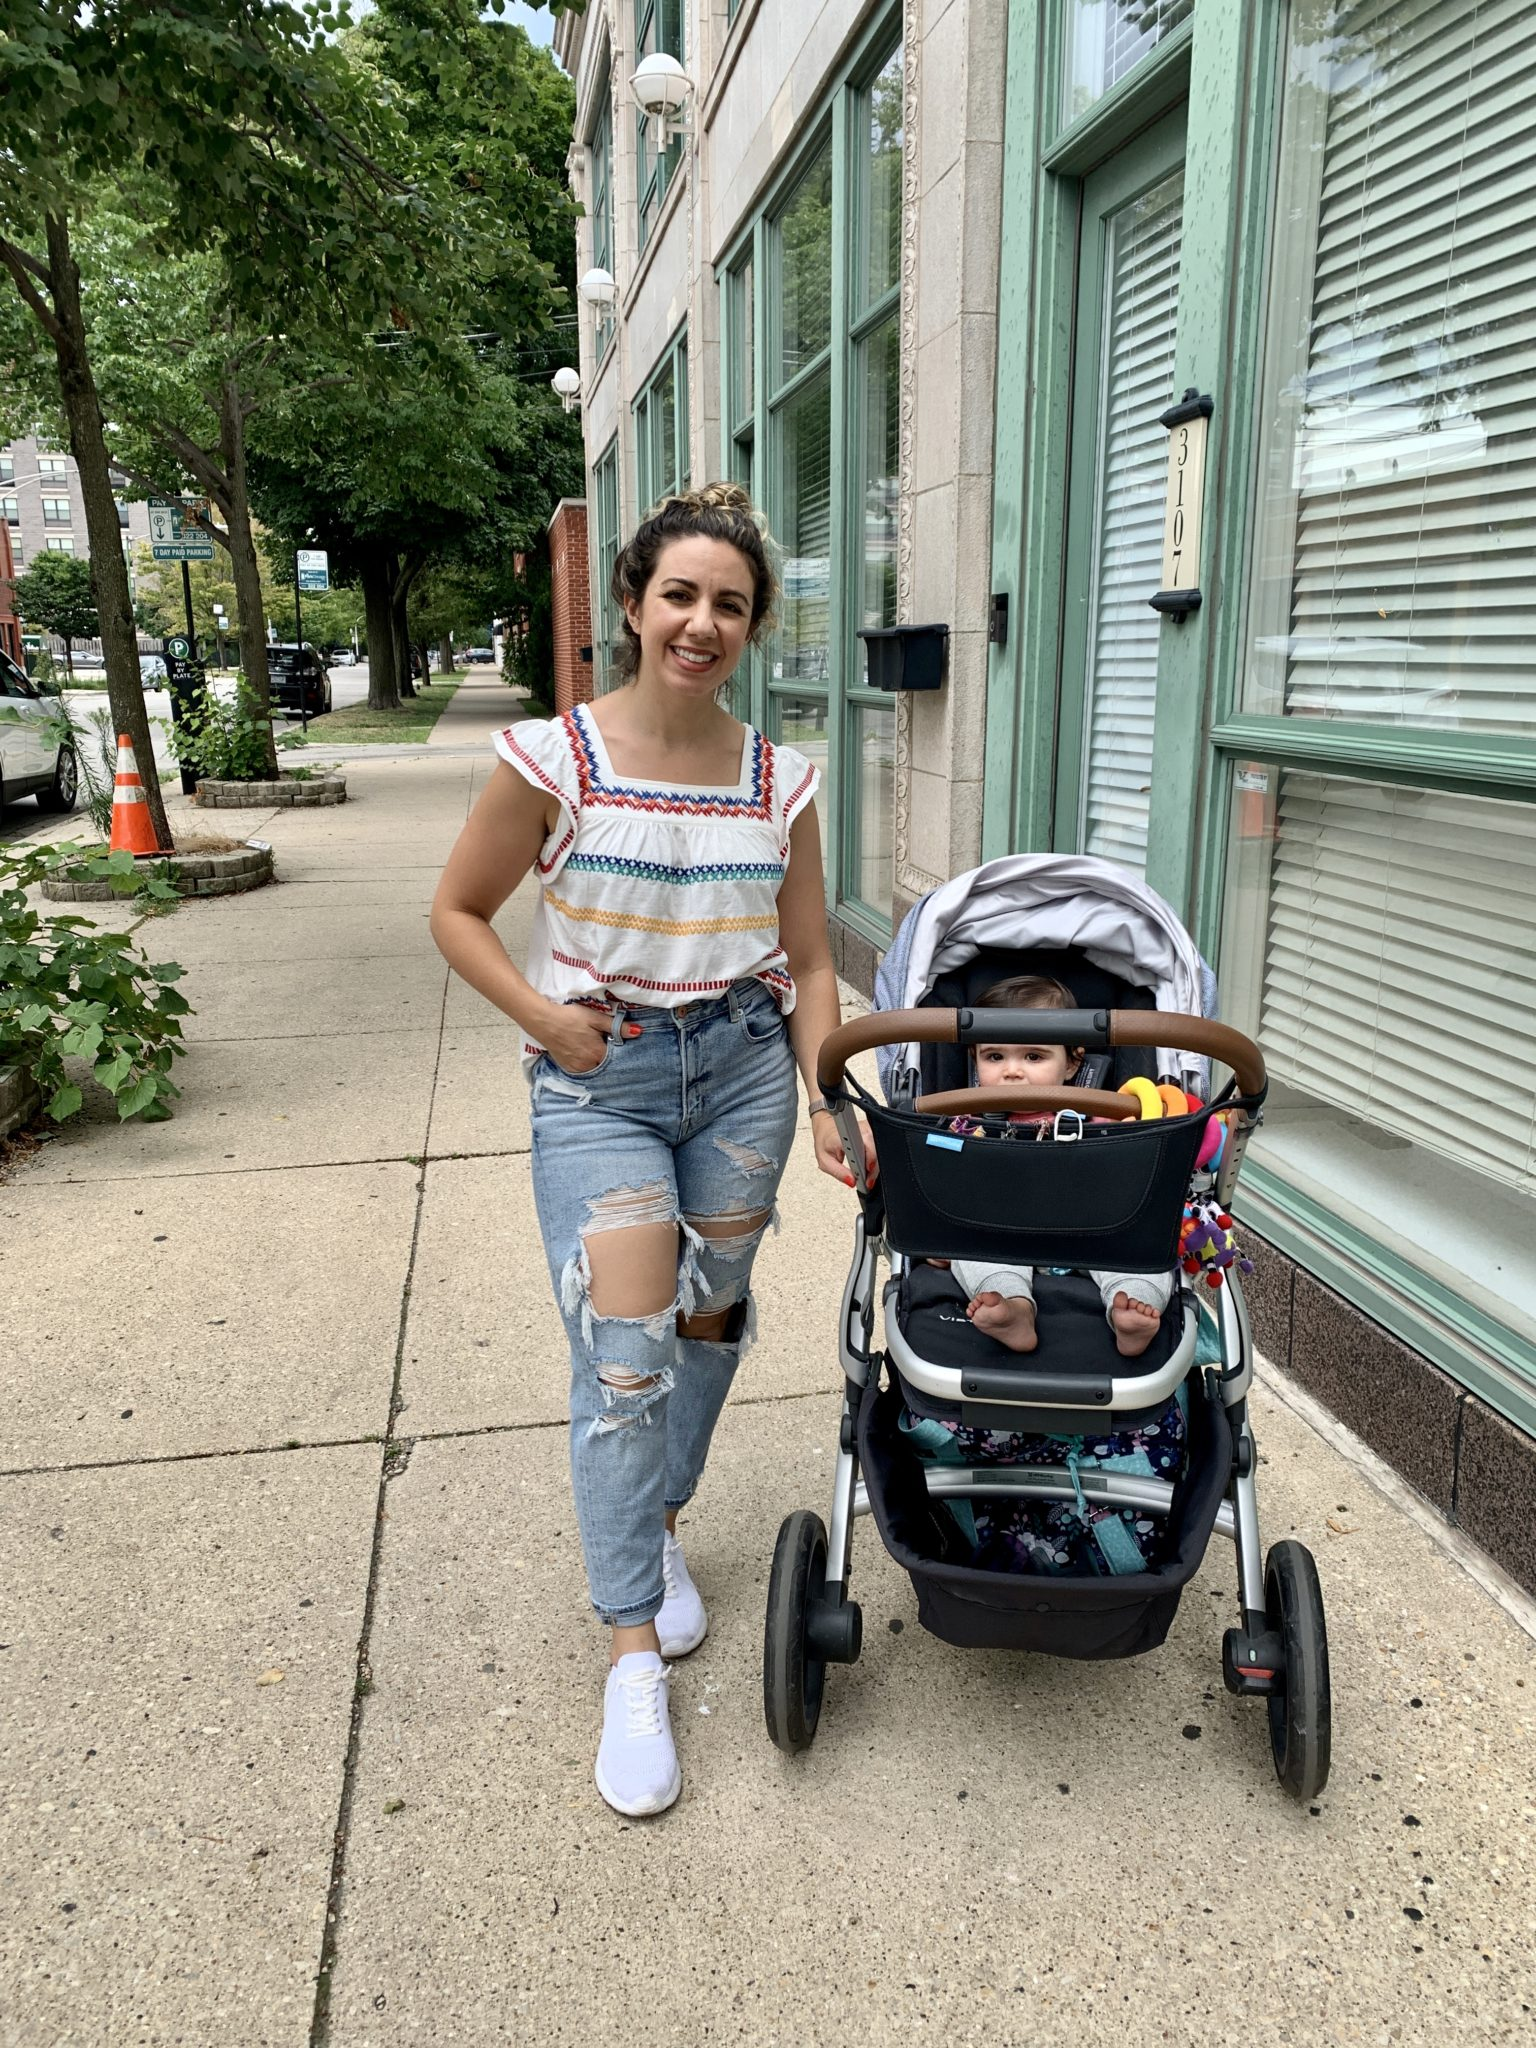 Embroidered Top by popular Chicago fashion blog, Glass of Glam: image of a woman standing next to a baby stroller on a city sidewalk and wearing a Going With You White Multi Top THML, AE Mom Jean, and SheIn CUCCOO - The Everyday Sneakers.